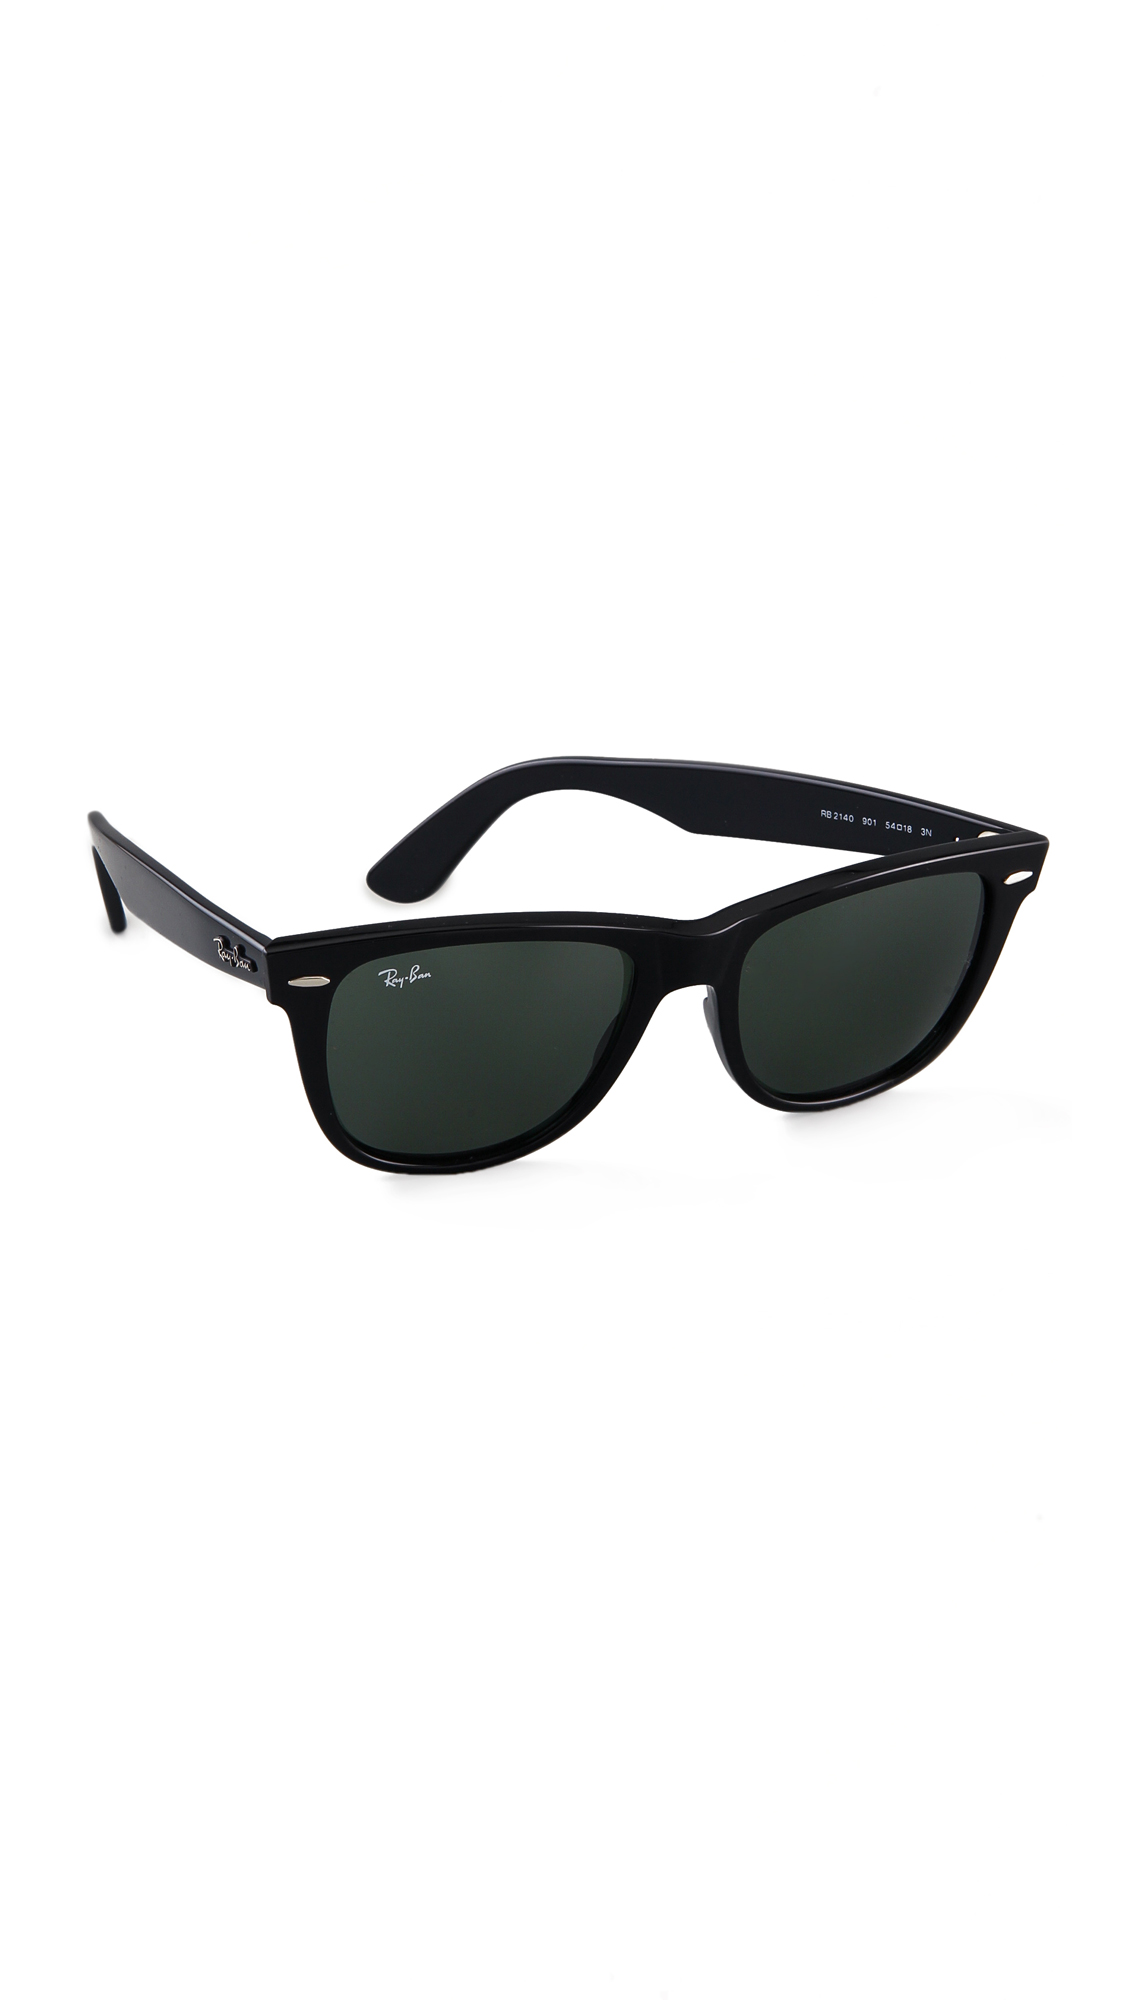 cheaper alternative to ray ban wayfarer